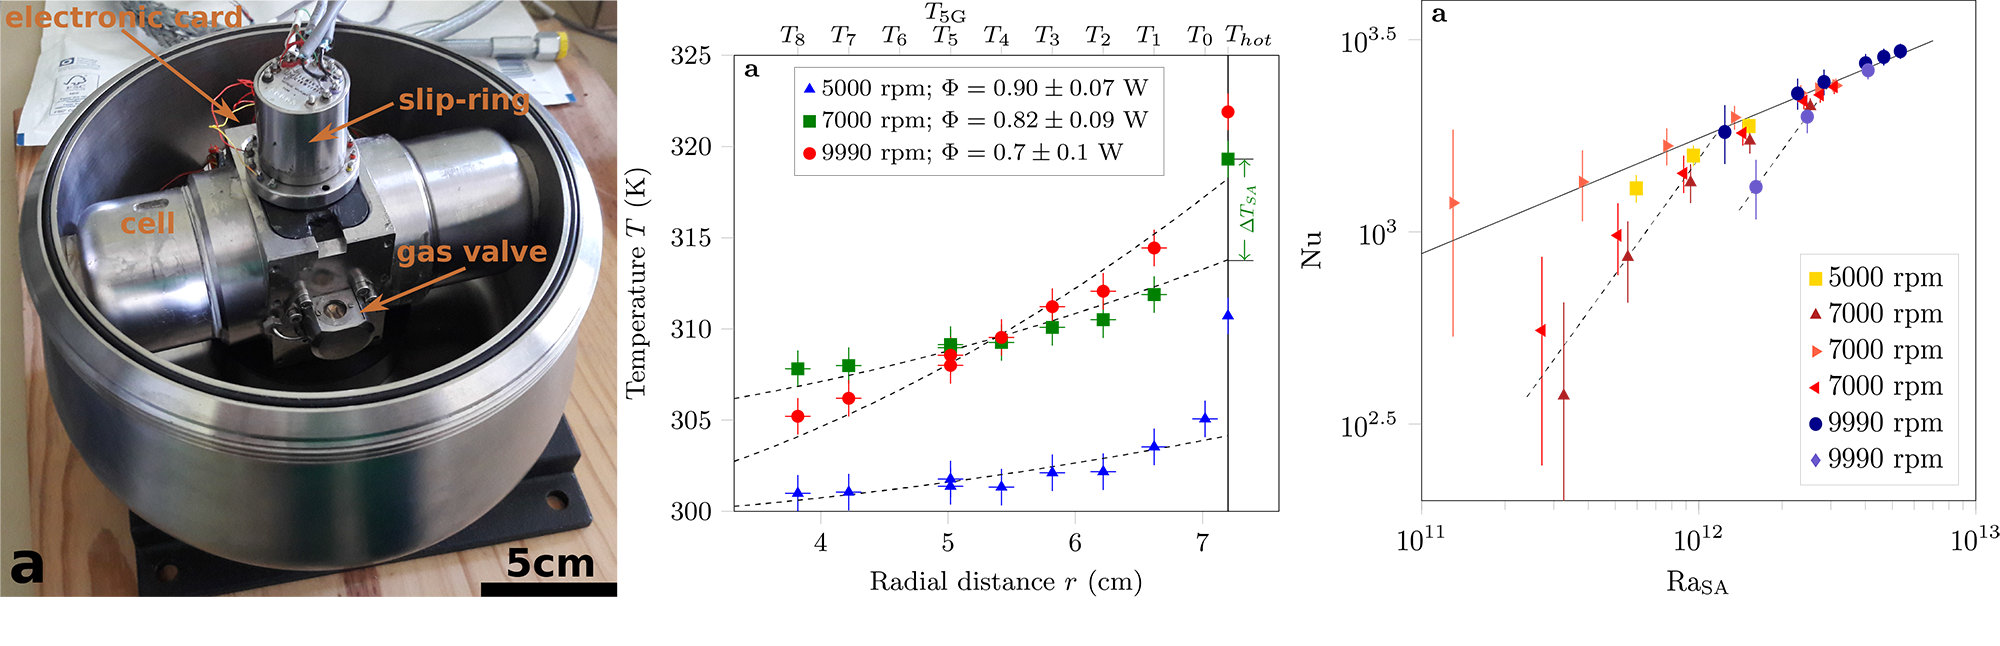 Convection in a centrifuge